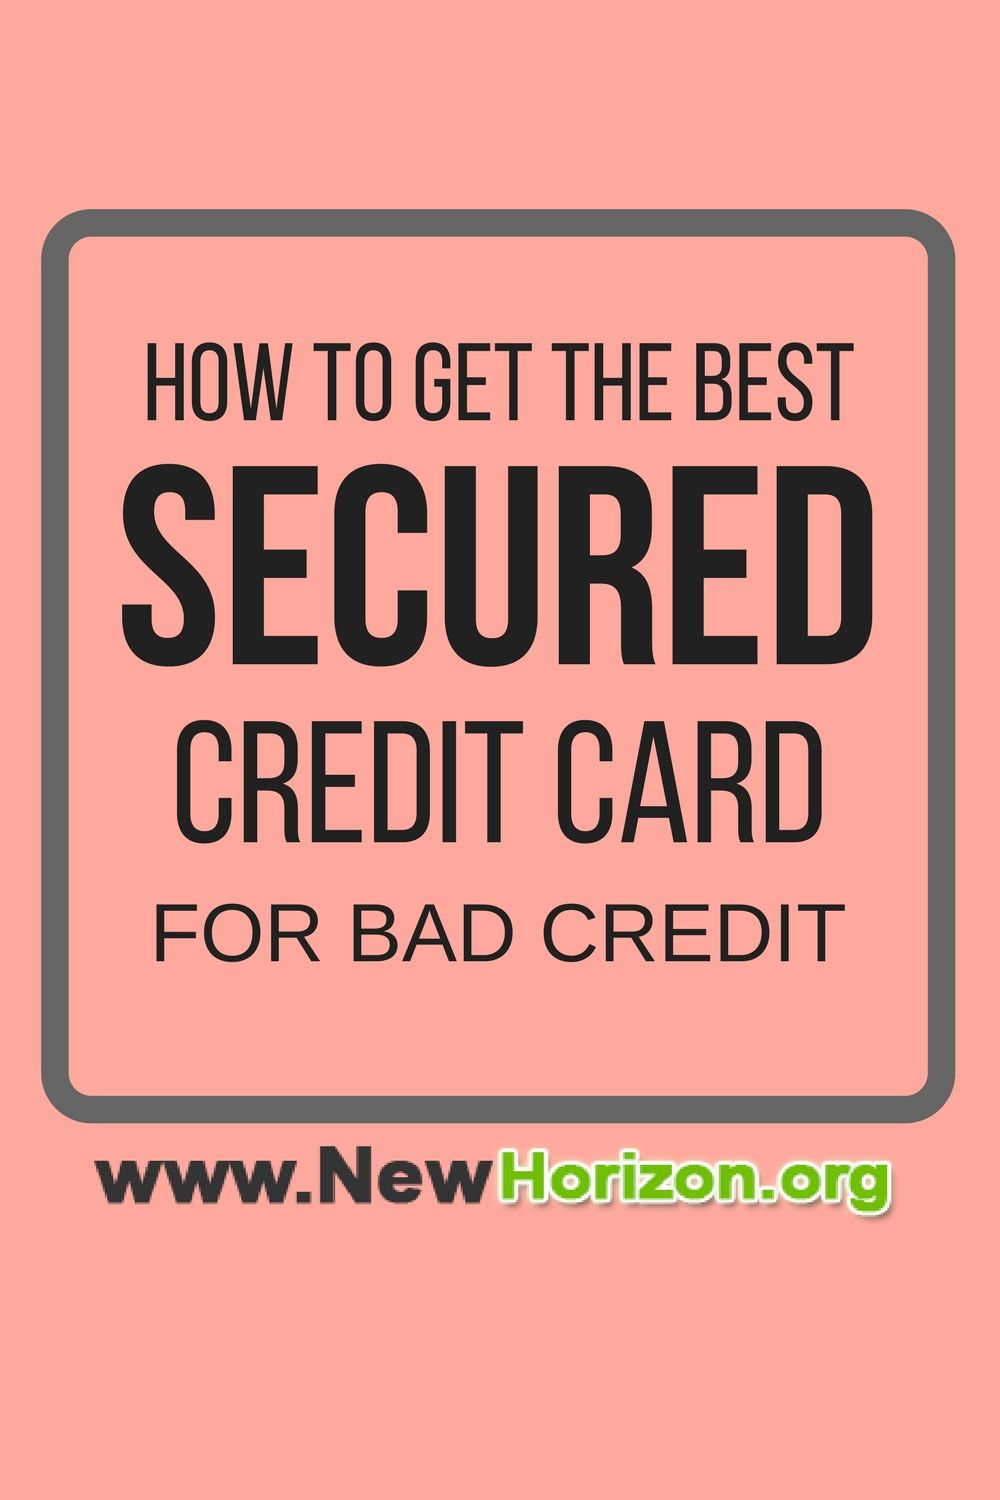 How to get the best secured credit card for bad credit